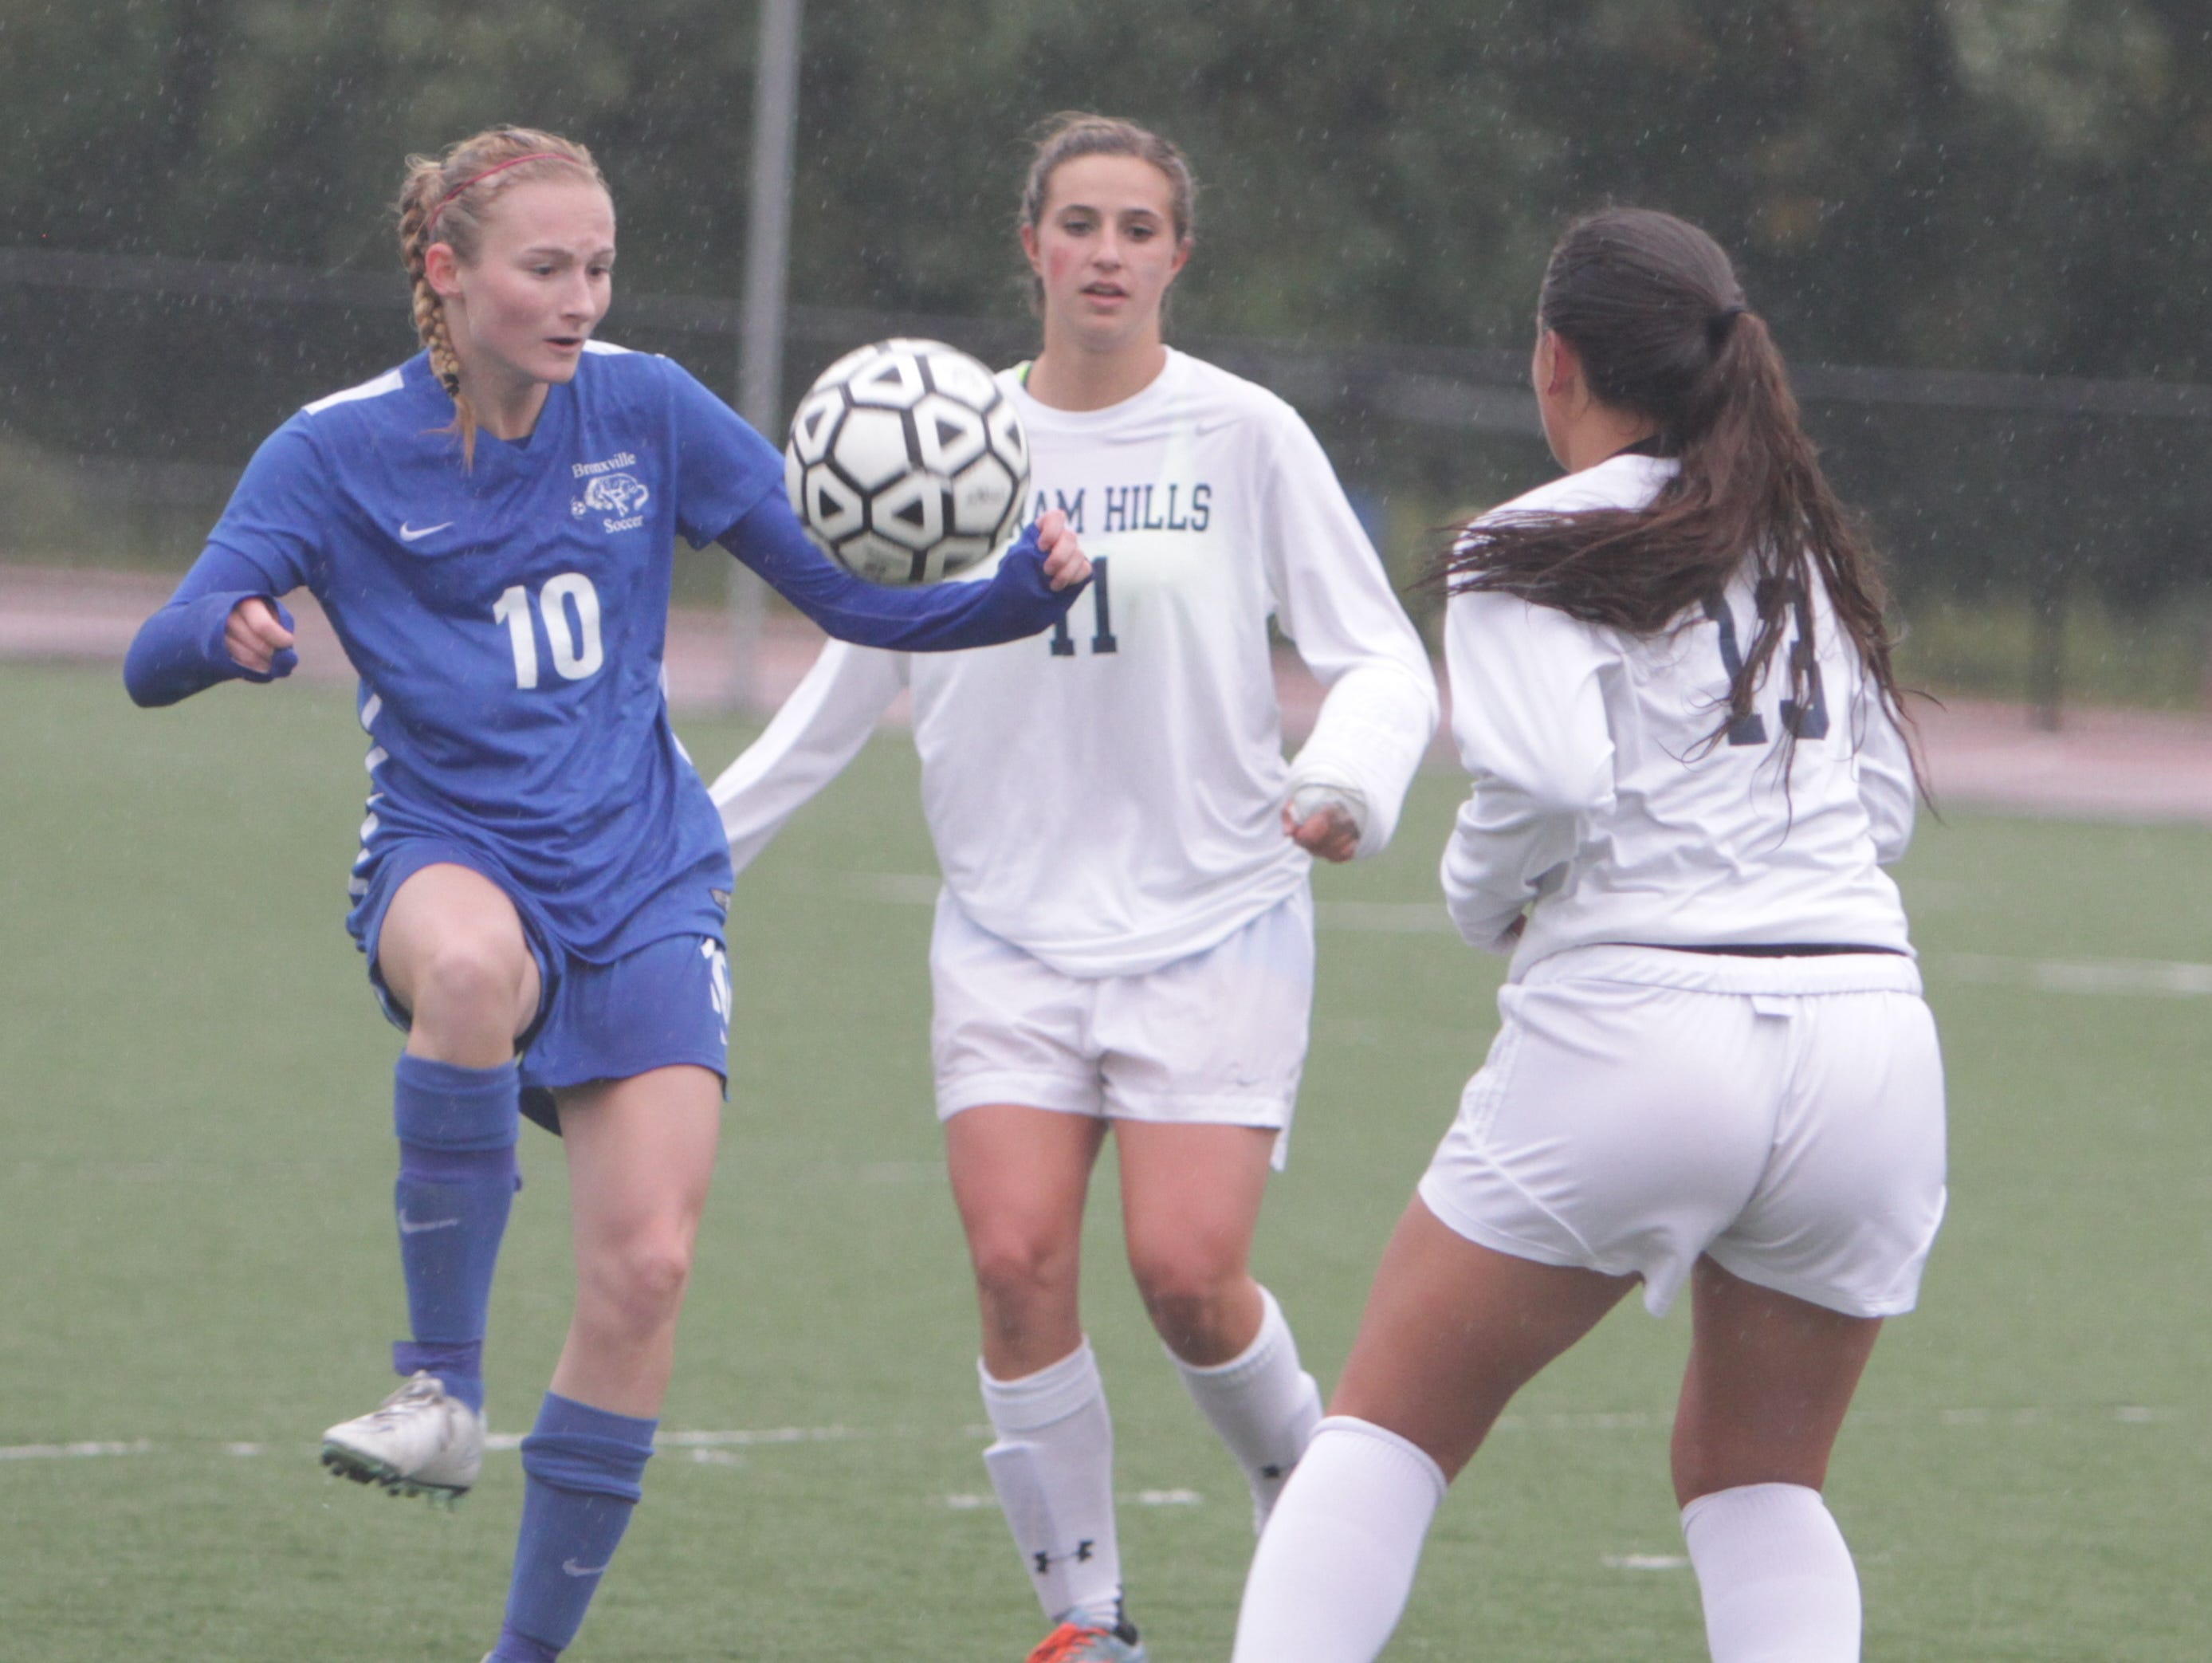 Byram Hills defeated Bronxville 3-2 in overtime in a game at Byram Hills High School on Friday, October 2nd, 2015.